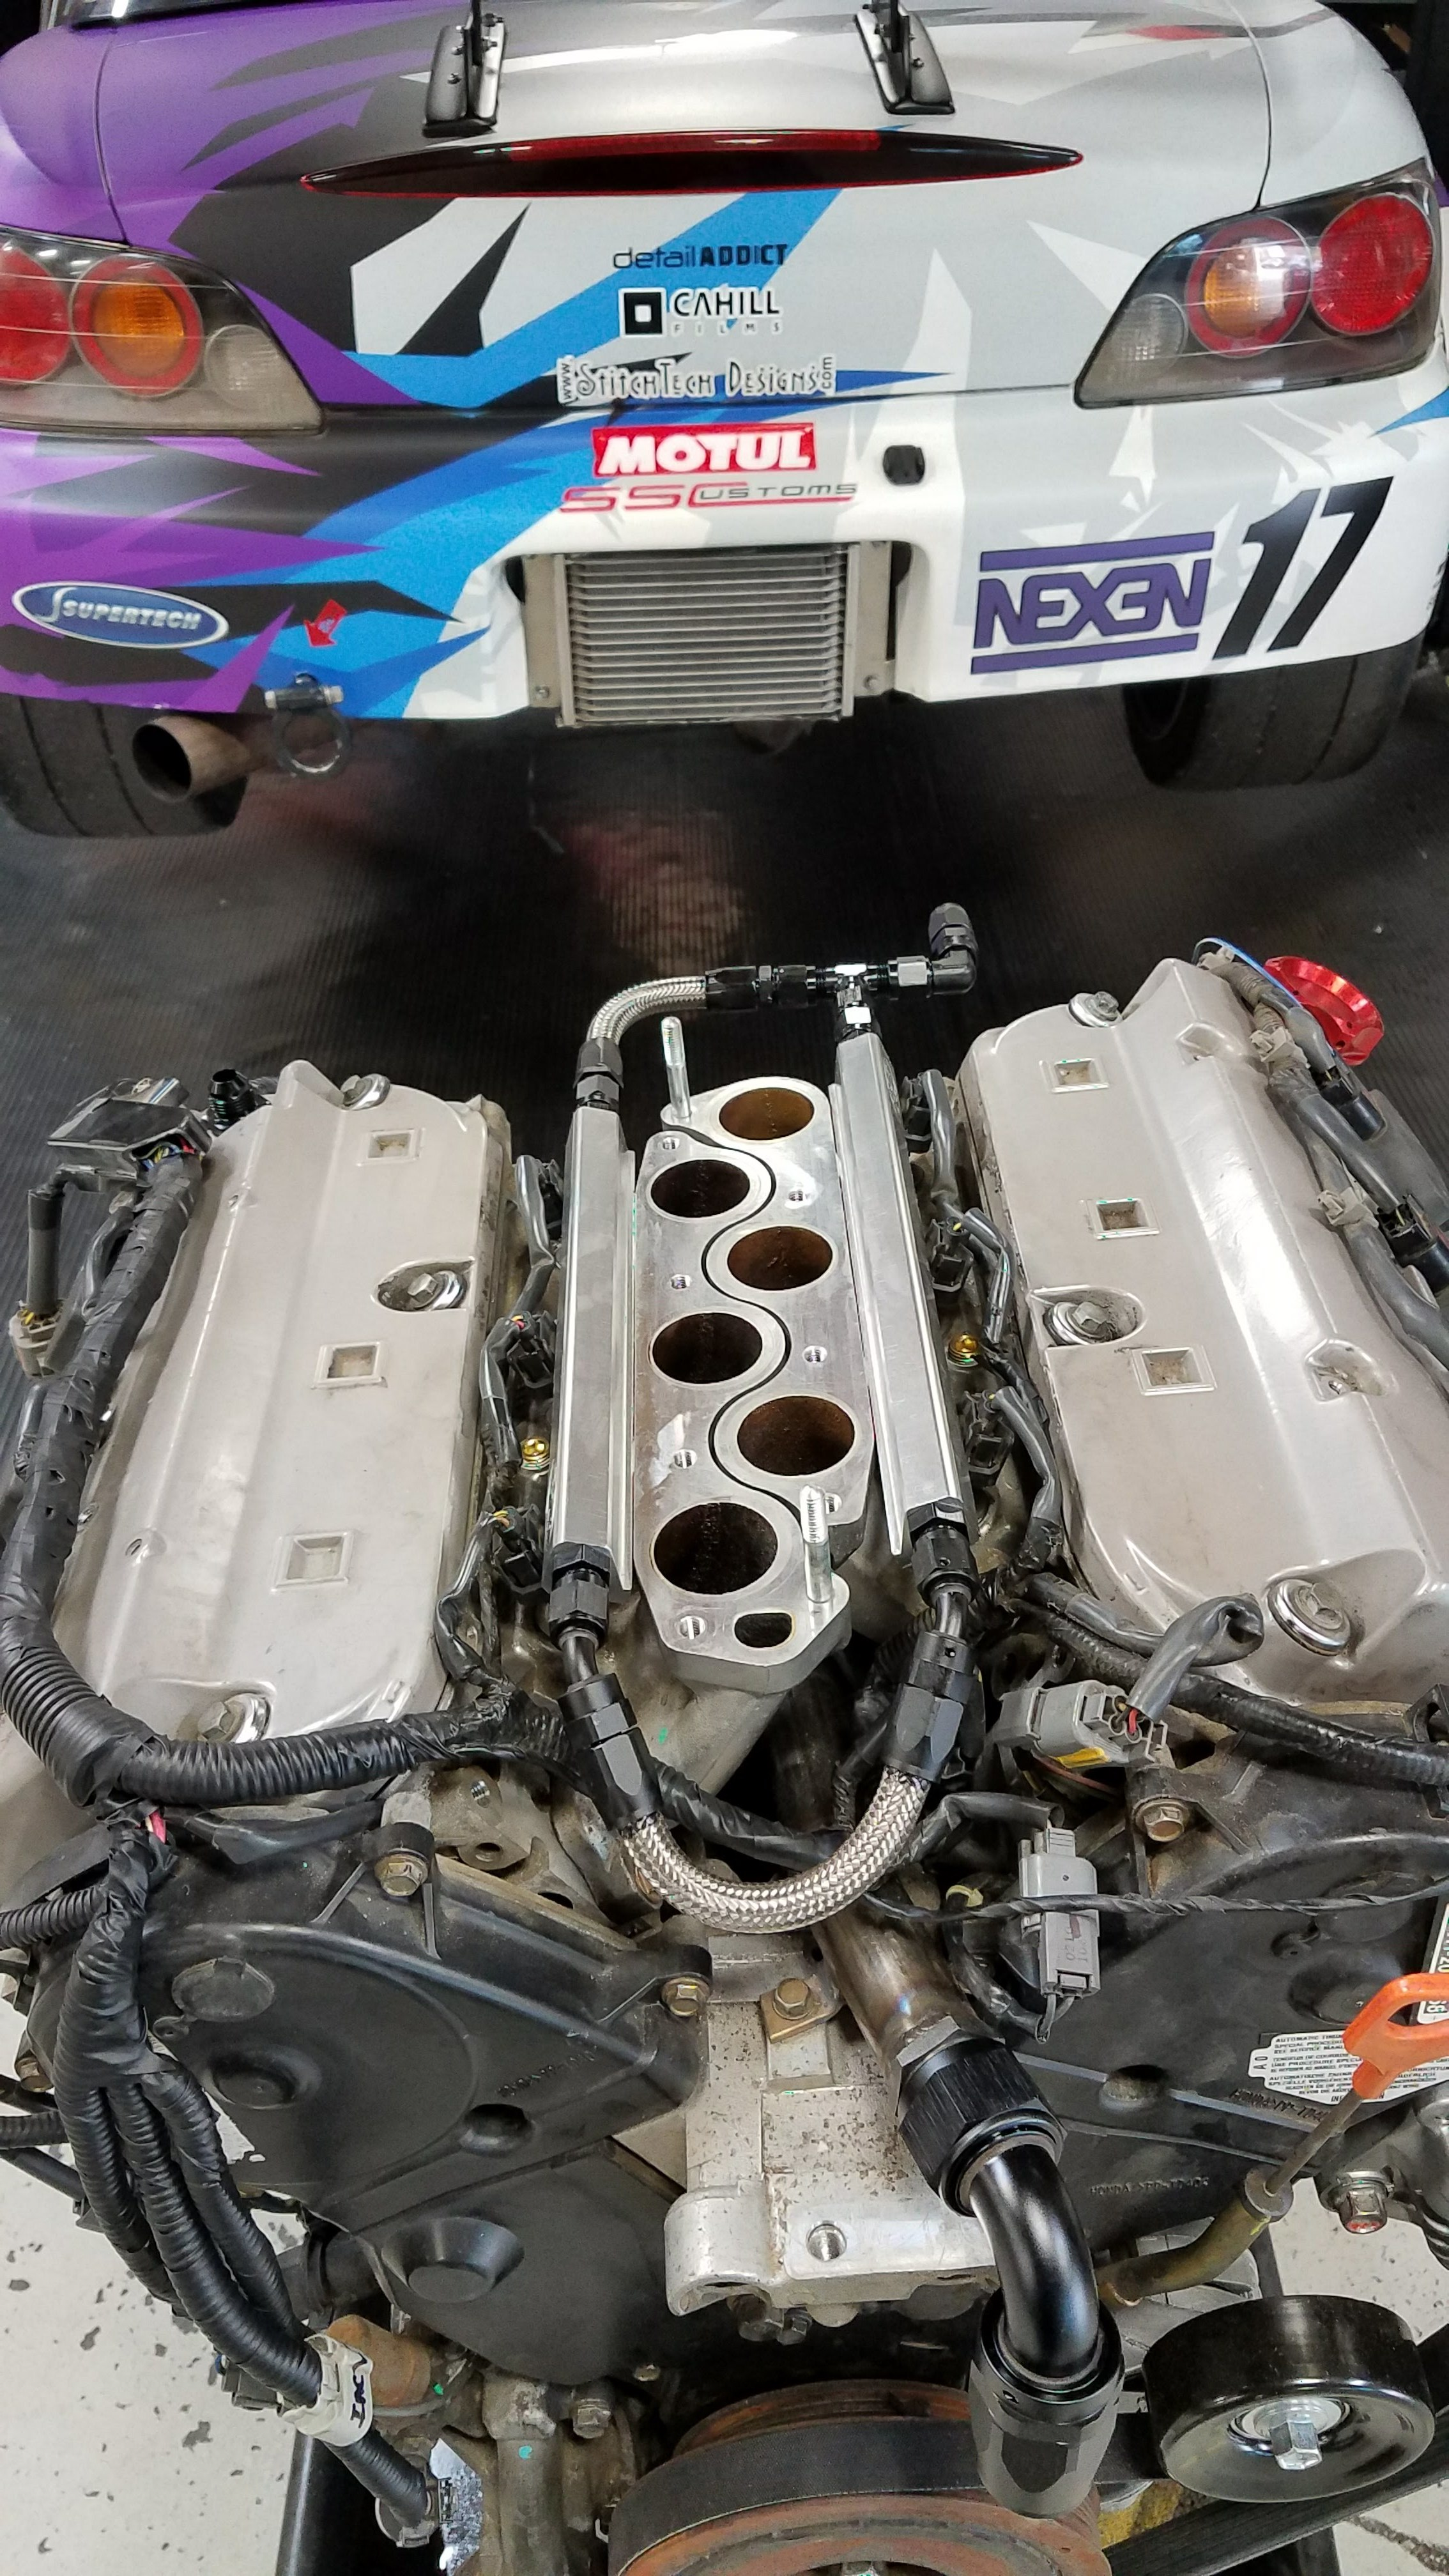 Flipped intake runners and manifold 180 degrees and added P2R fuel rails